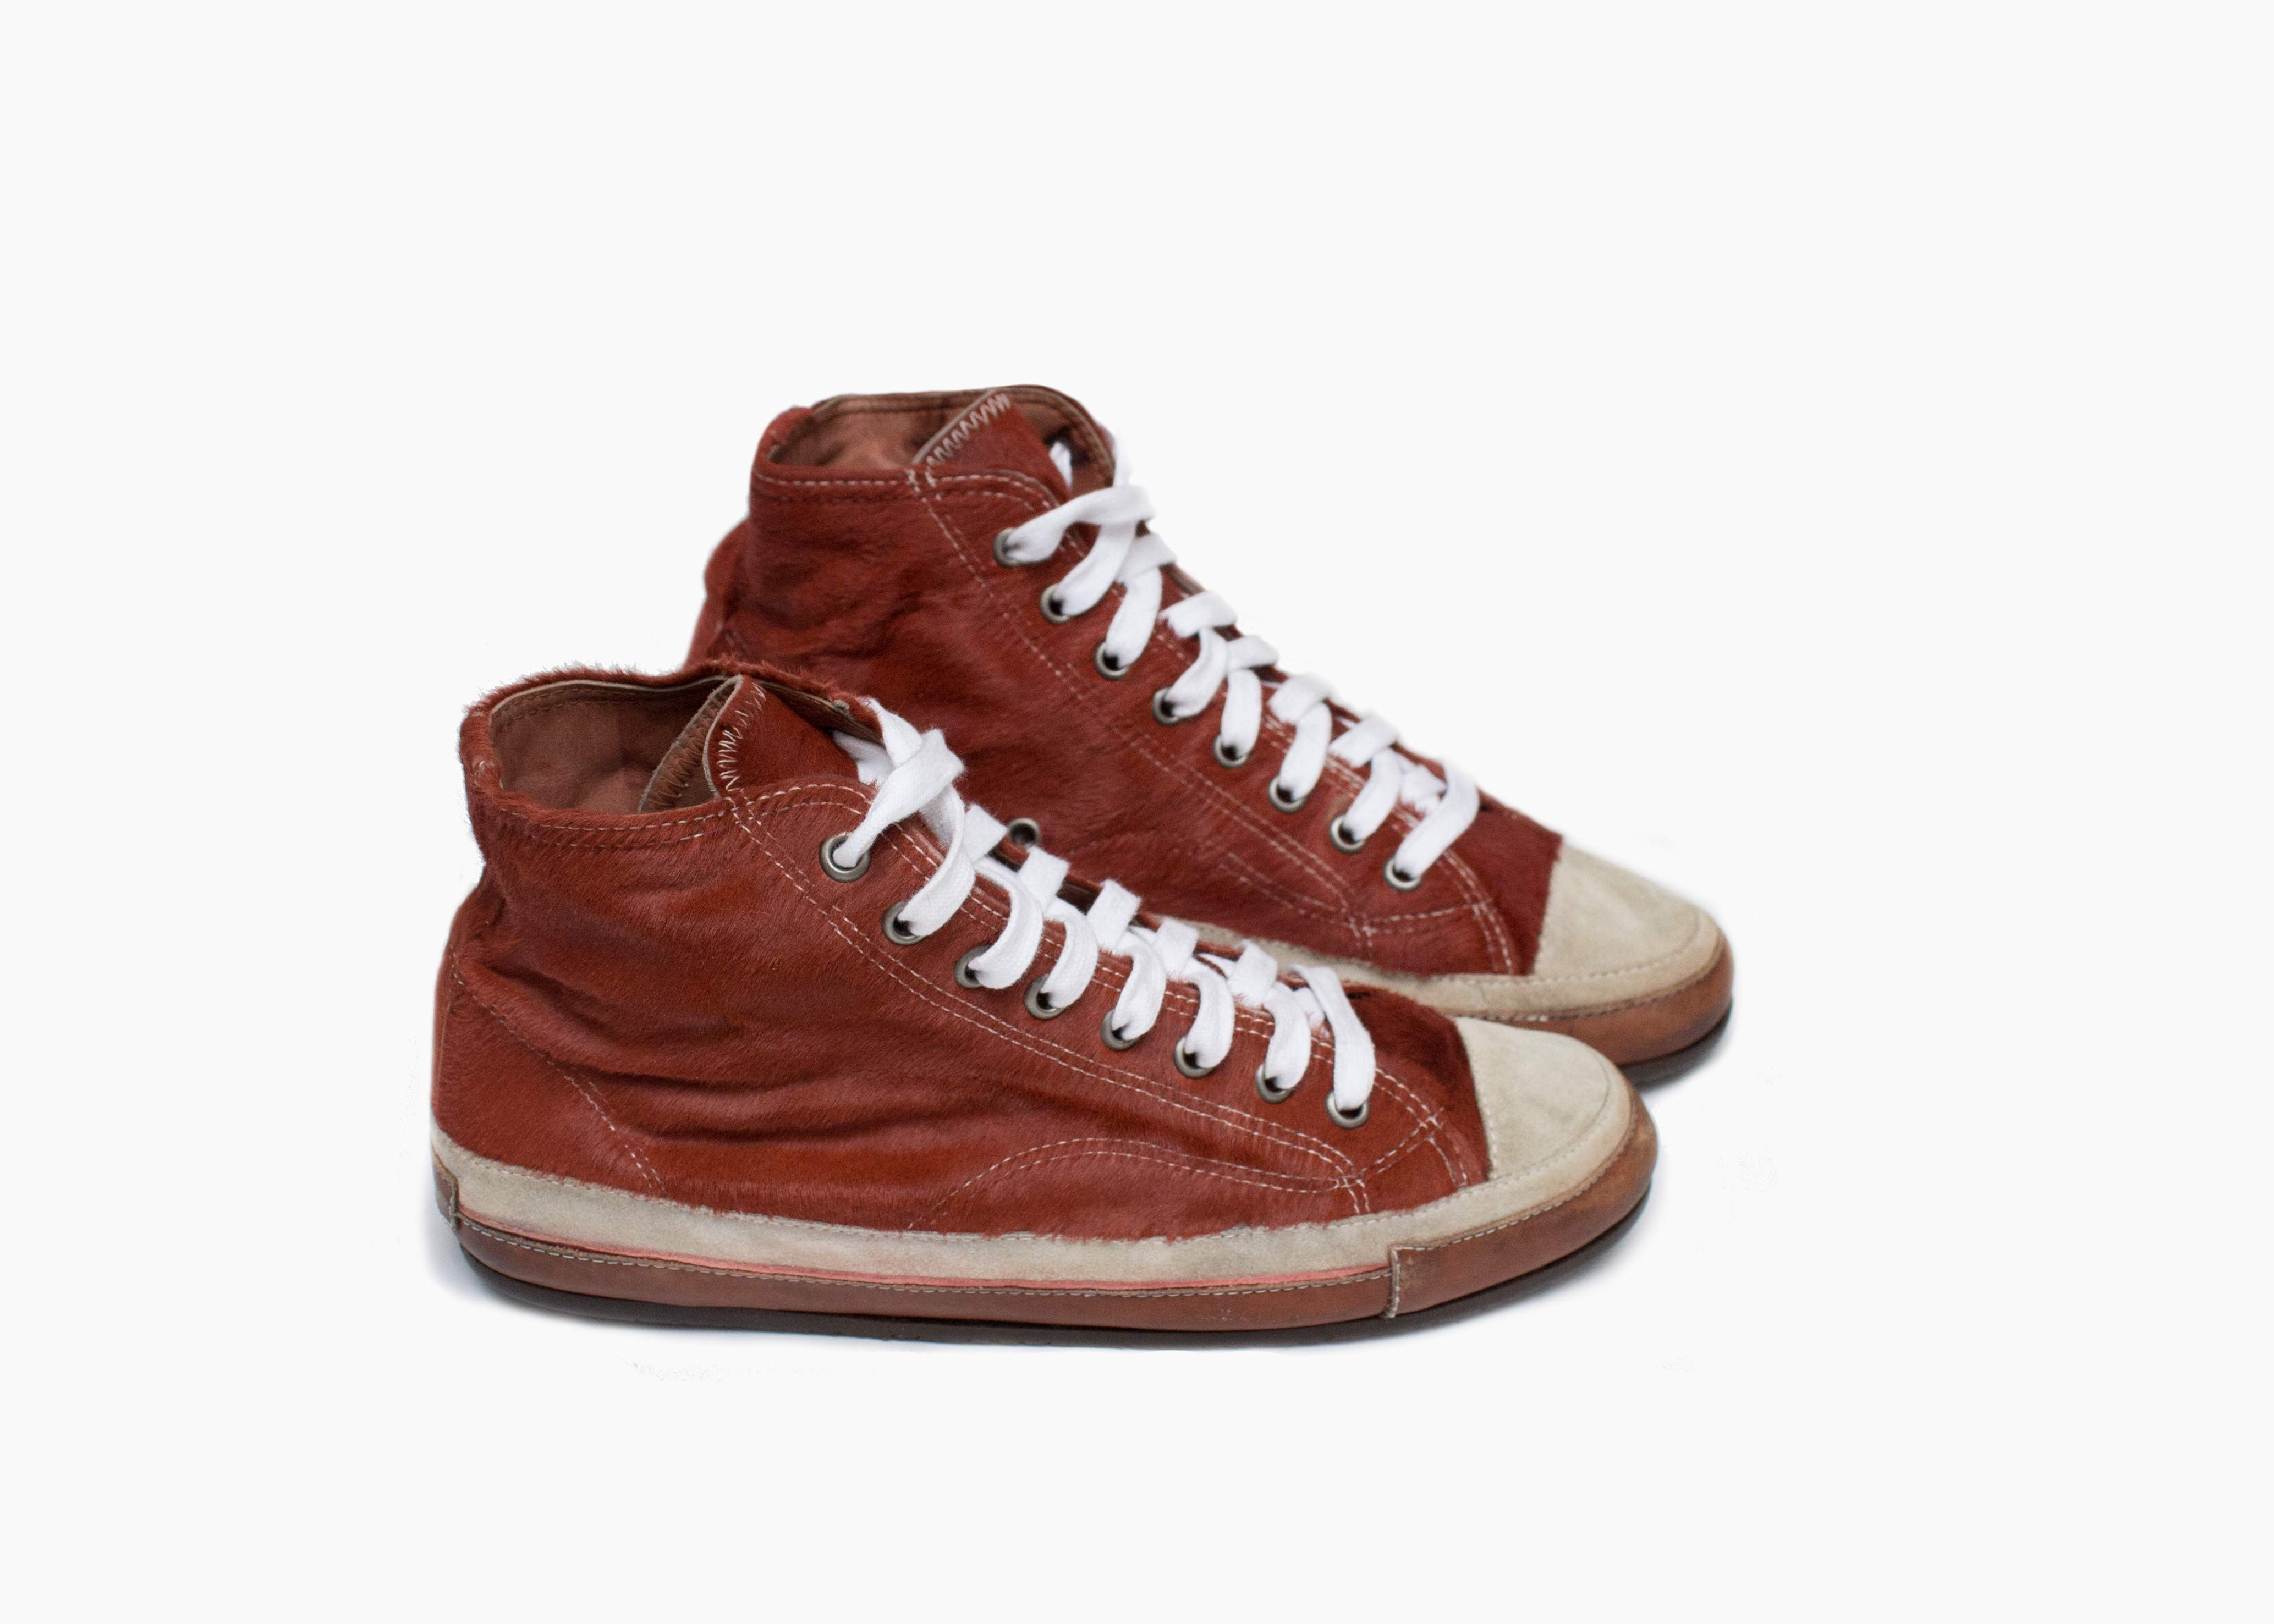 99baefd1acb Dries Van Noten horse hair high-top sneakers - supermarket - supertalk